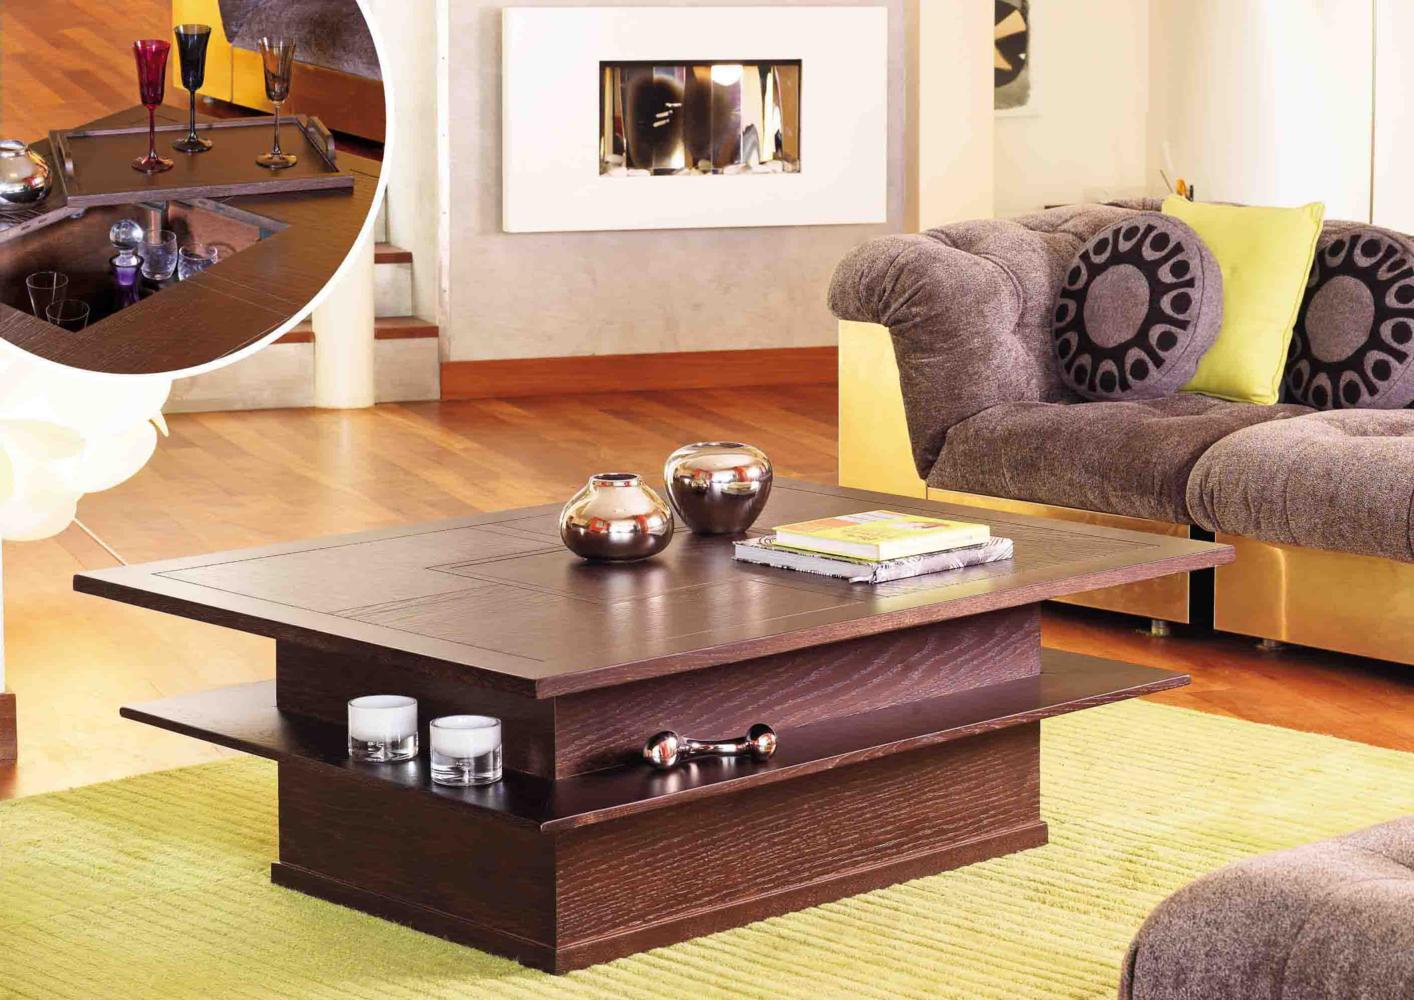 acheter votre table basse bar et plateau amovible chez simeuble. Black Bedroom Furniture Sets. Home Design Ideas